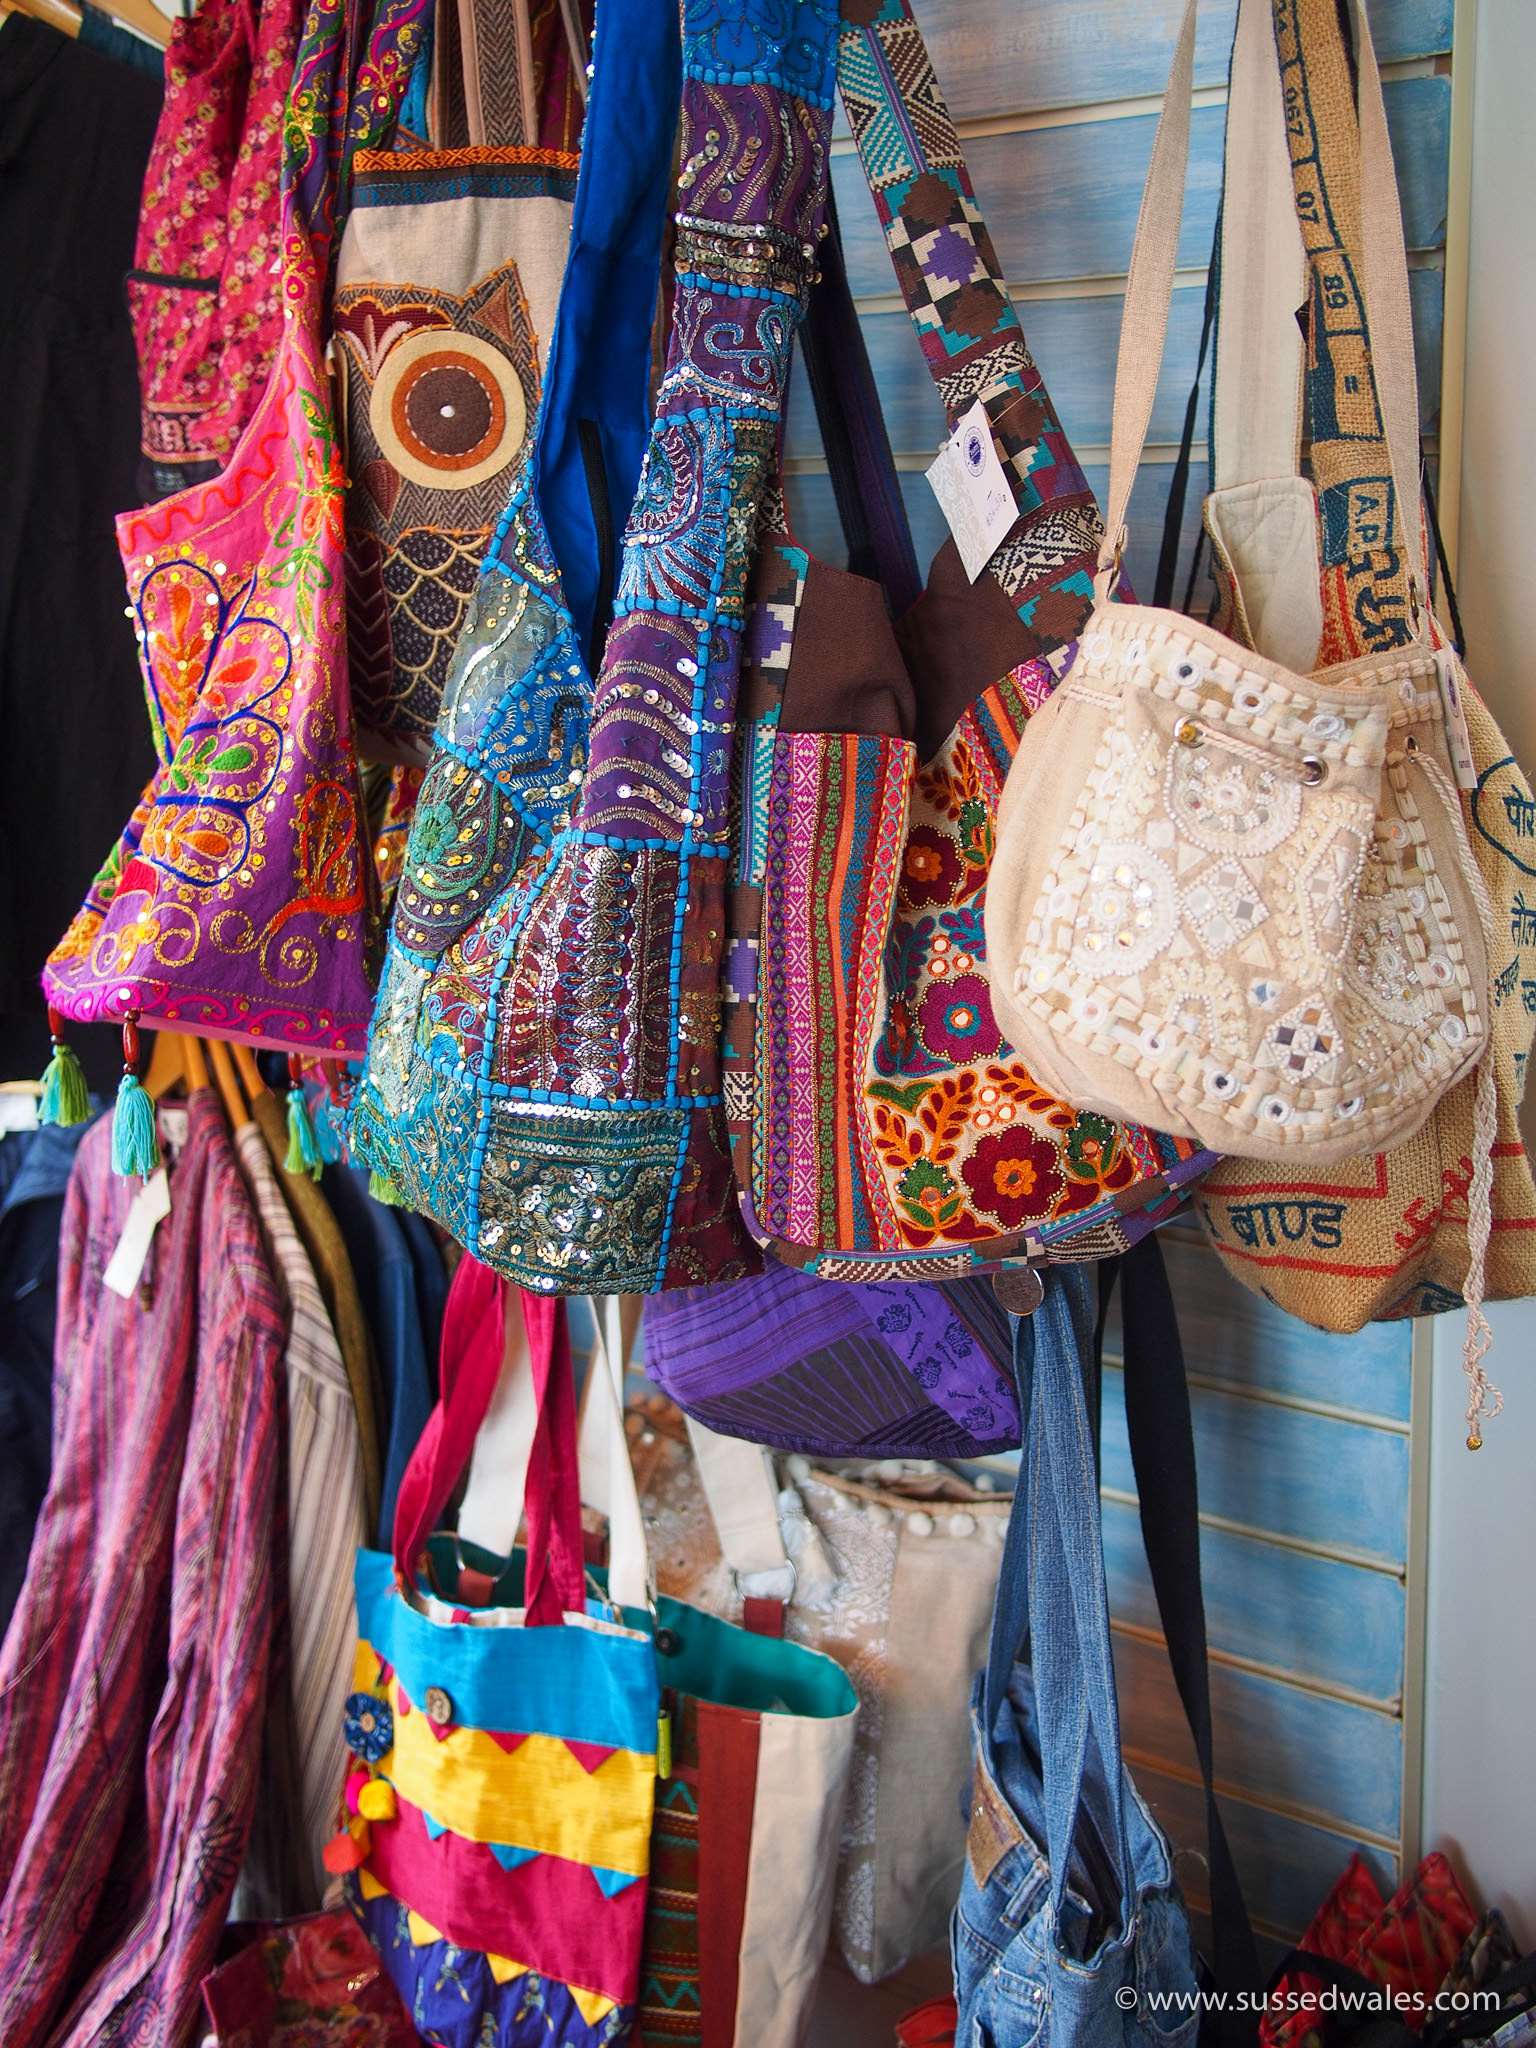 Bags from across the world